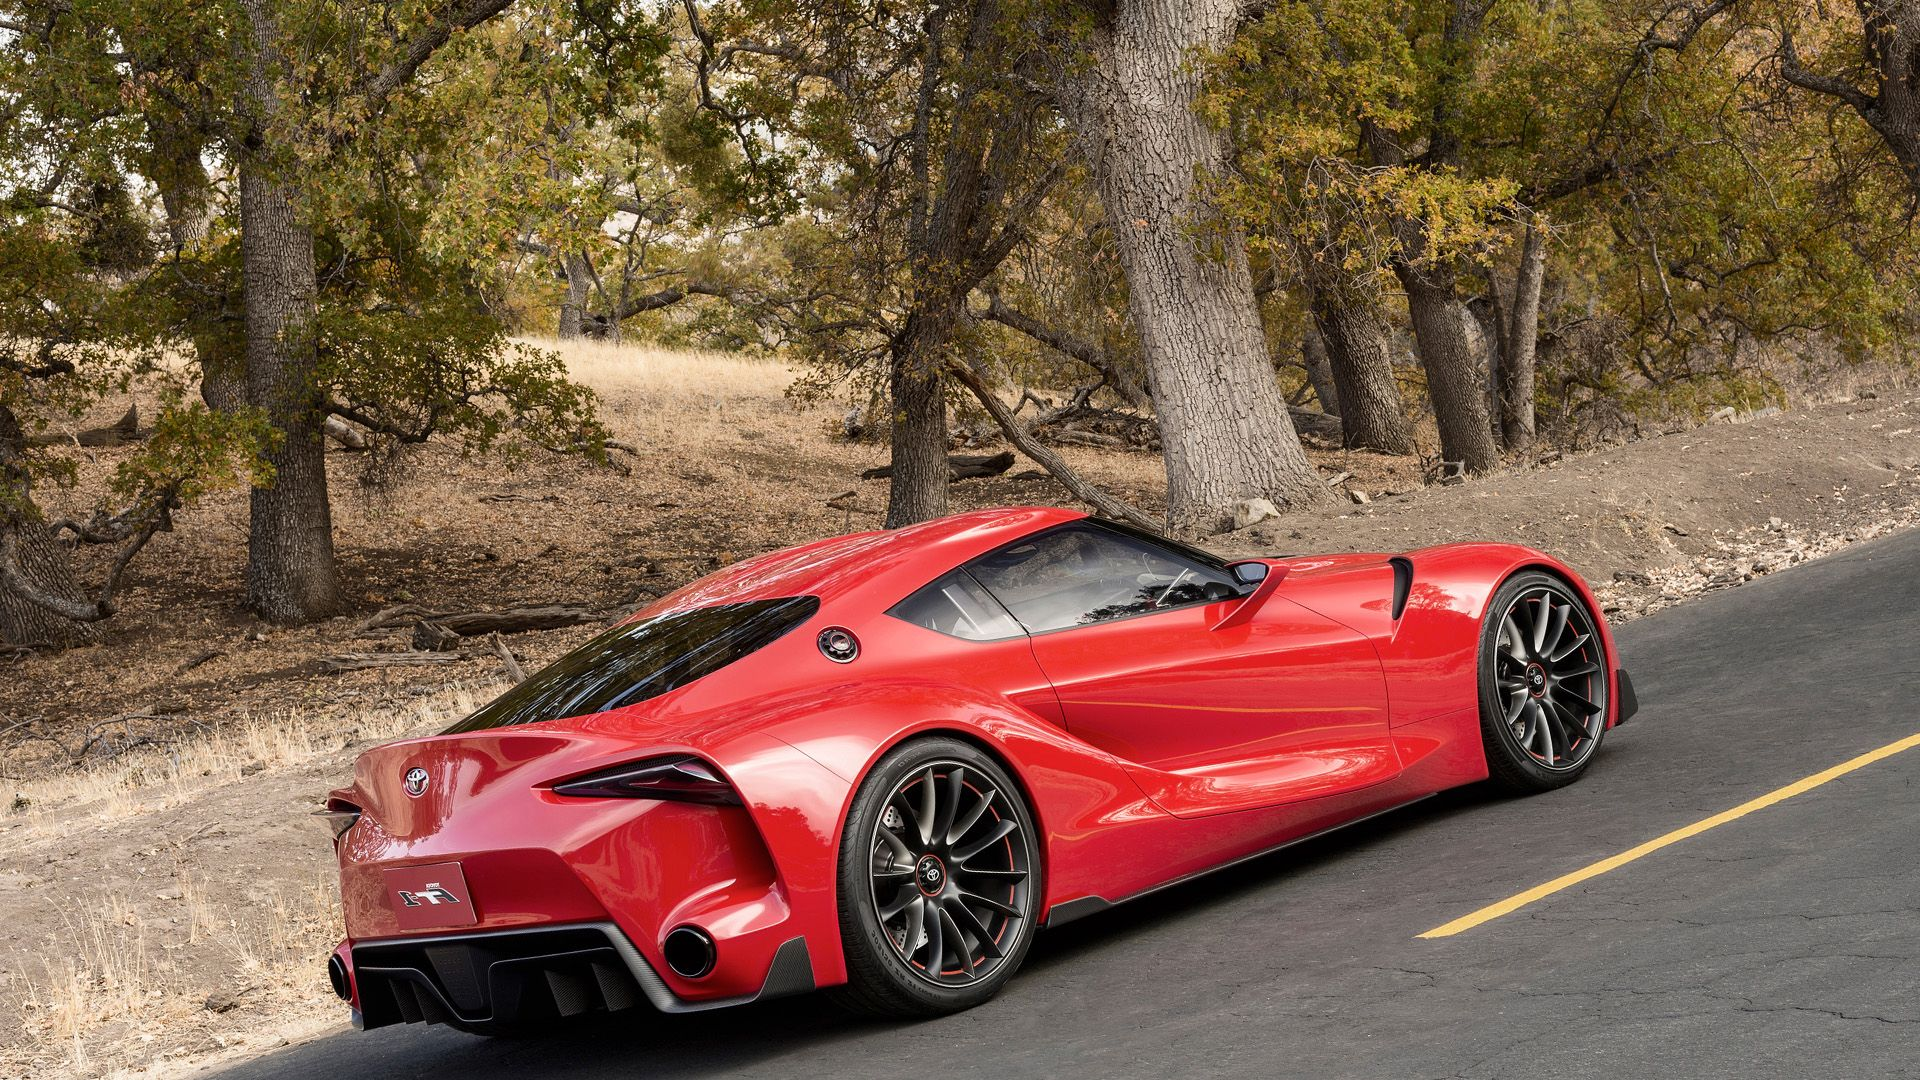 Toyota Ft 1 Supra Upcoming Cars 2020